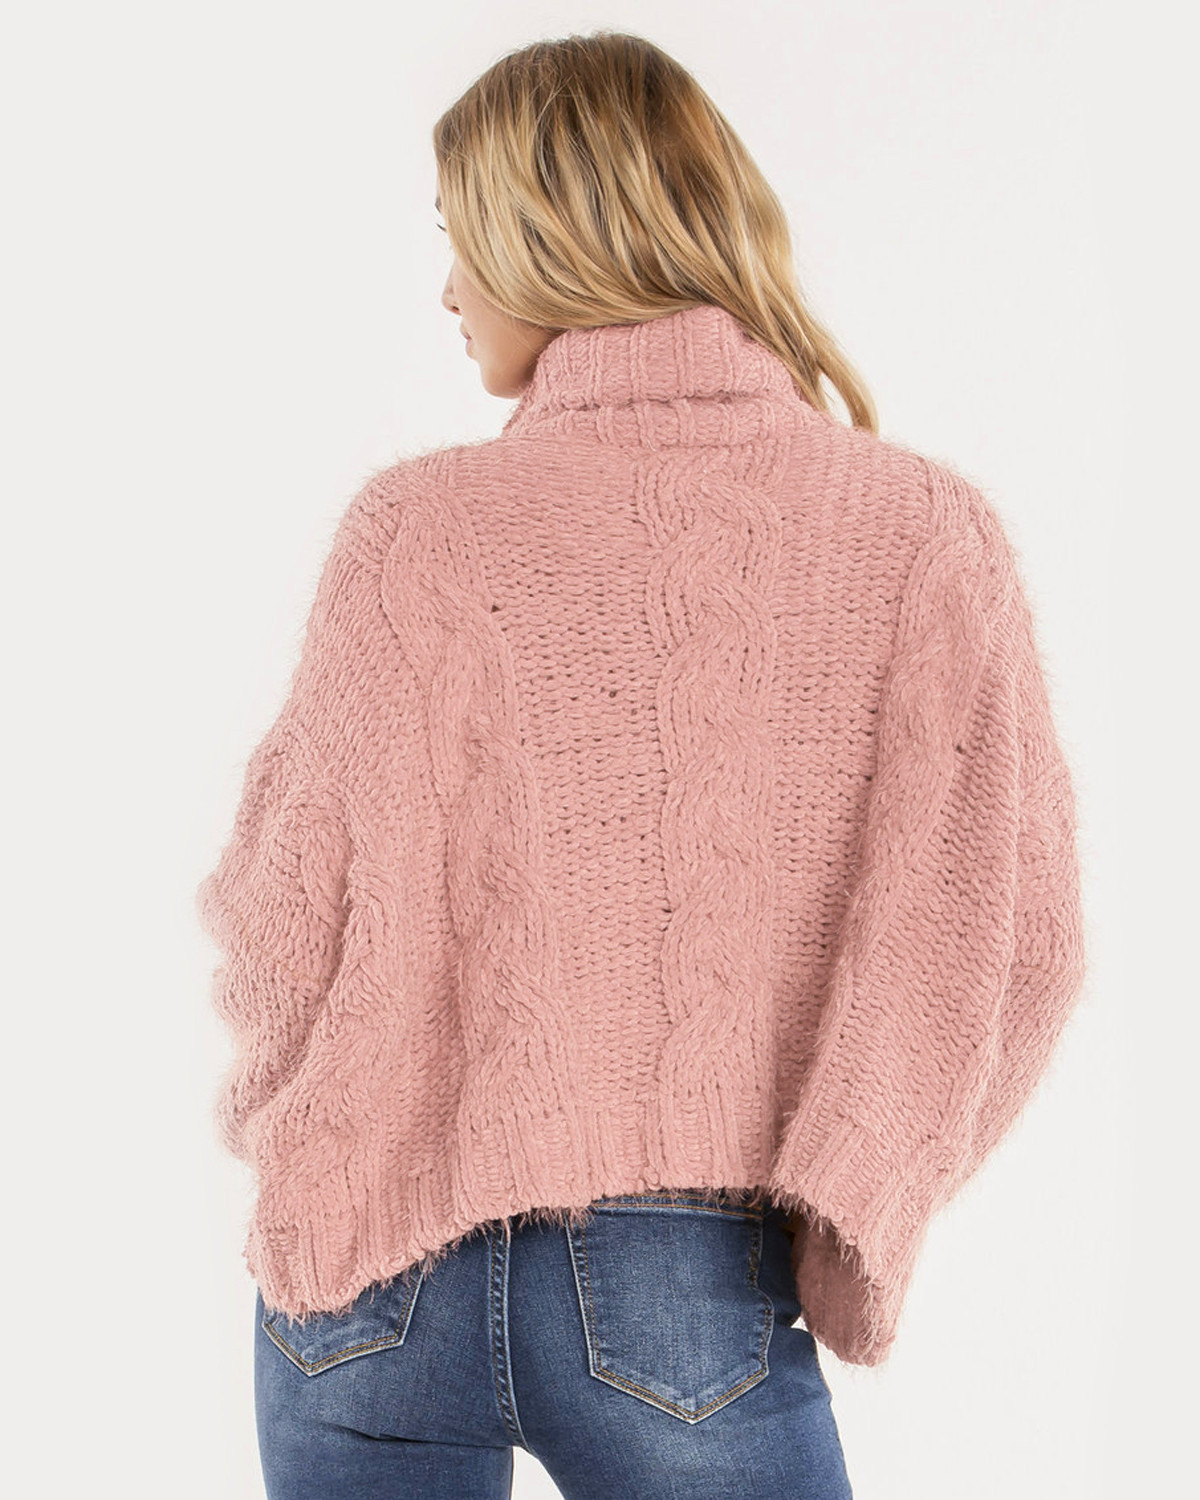 Miss Me Women's Light Pink Cropped Turtle Neck Sweater - Country ...